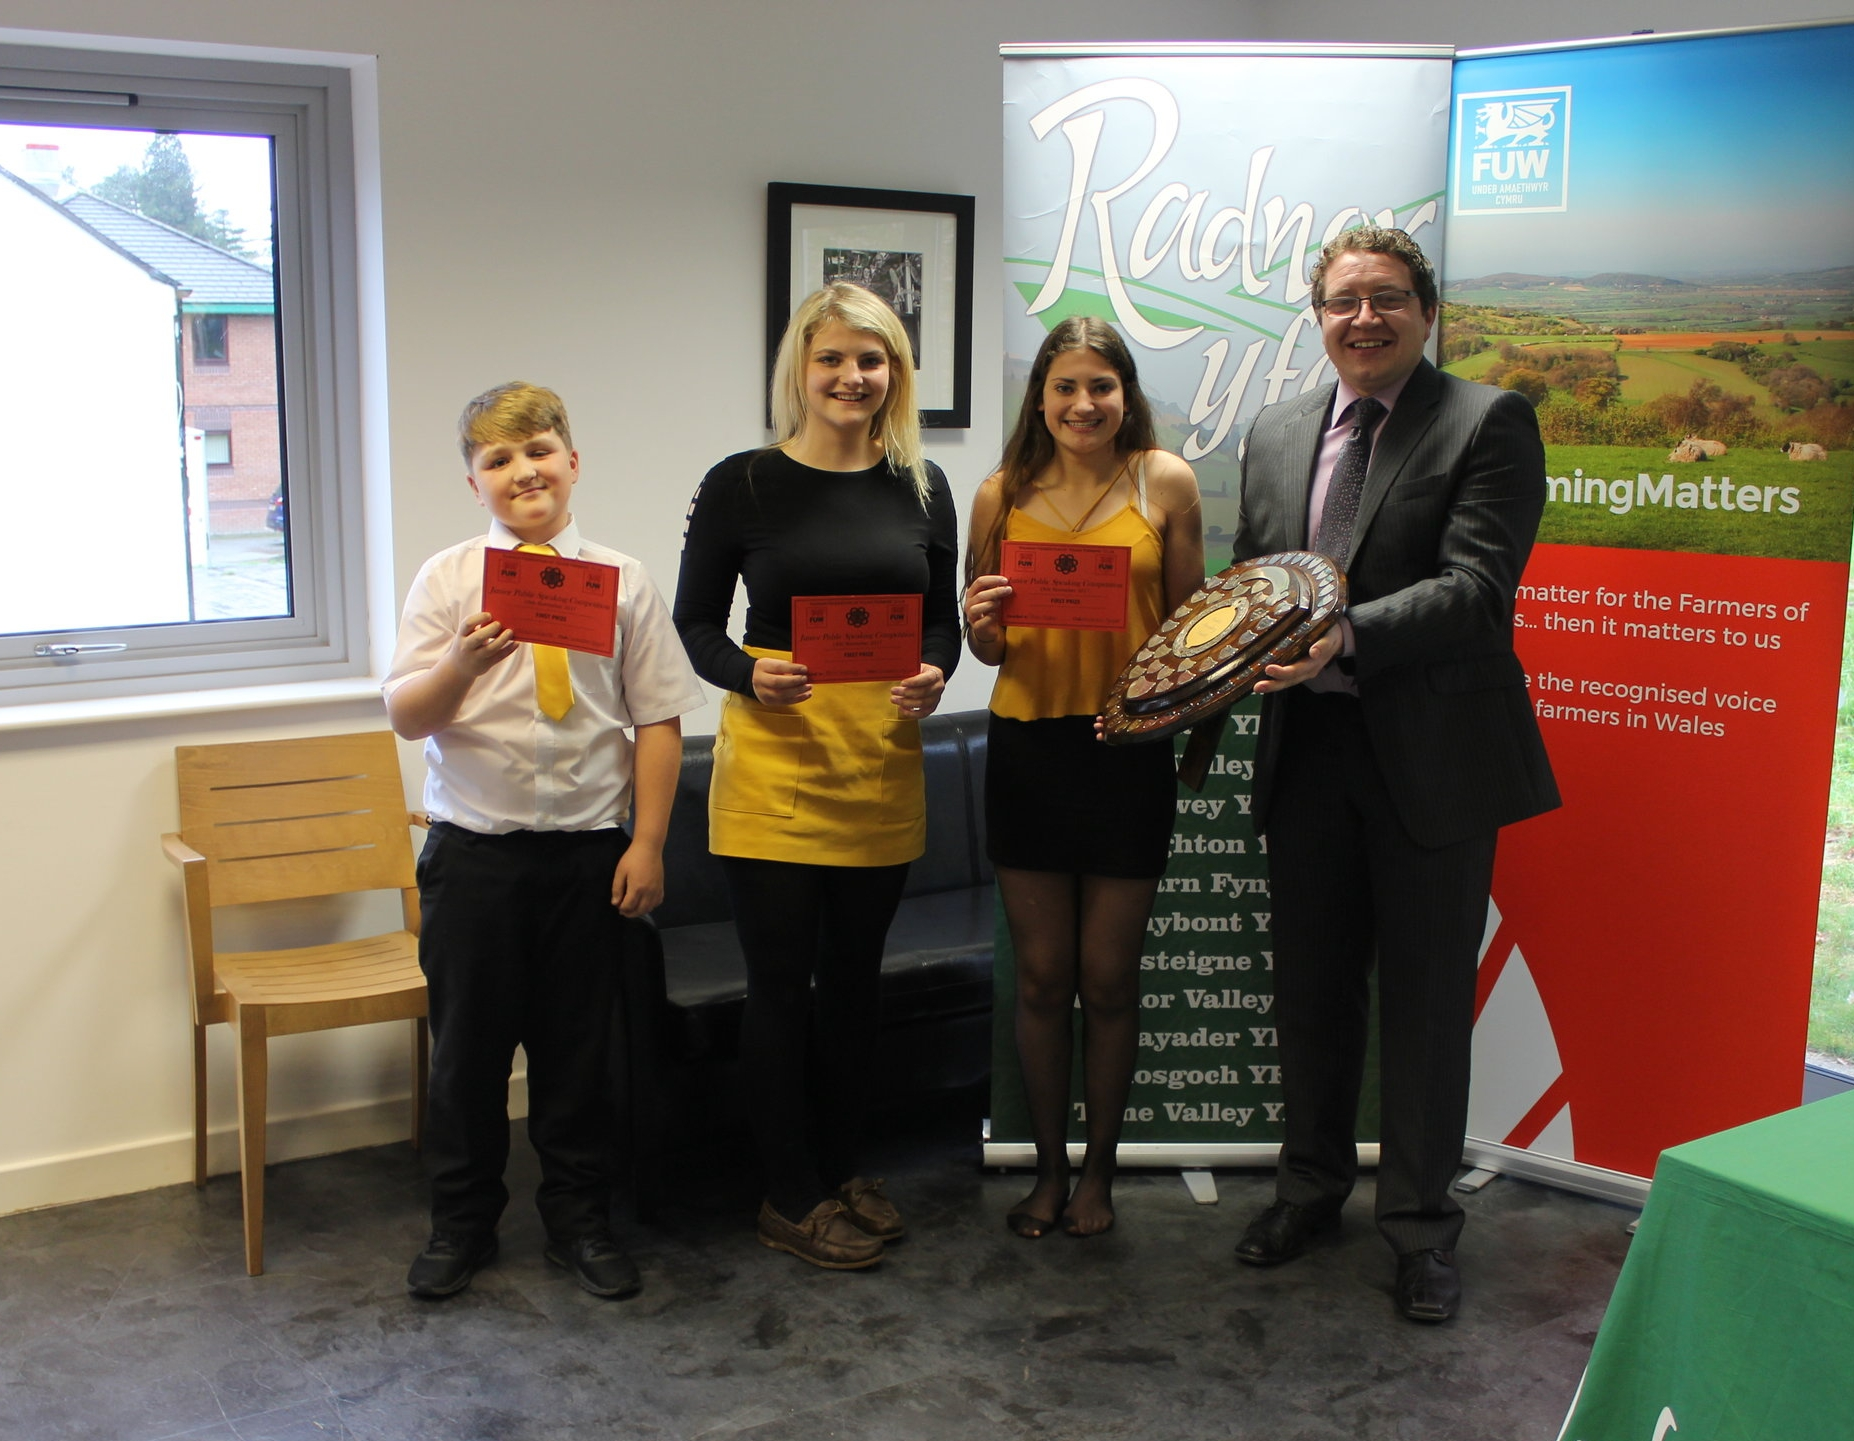 William Goodwin Edwards, Annie Fairclough and Rhian Hughes, Llanbadarn Fynydd YFC with judge Hefin Jones winning the Junior Public Speaking shield.